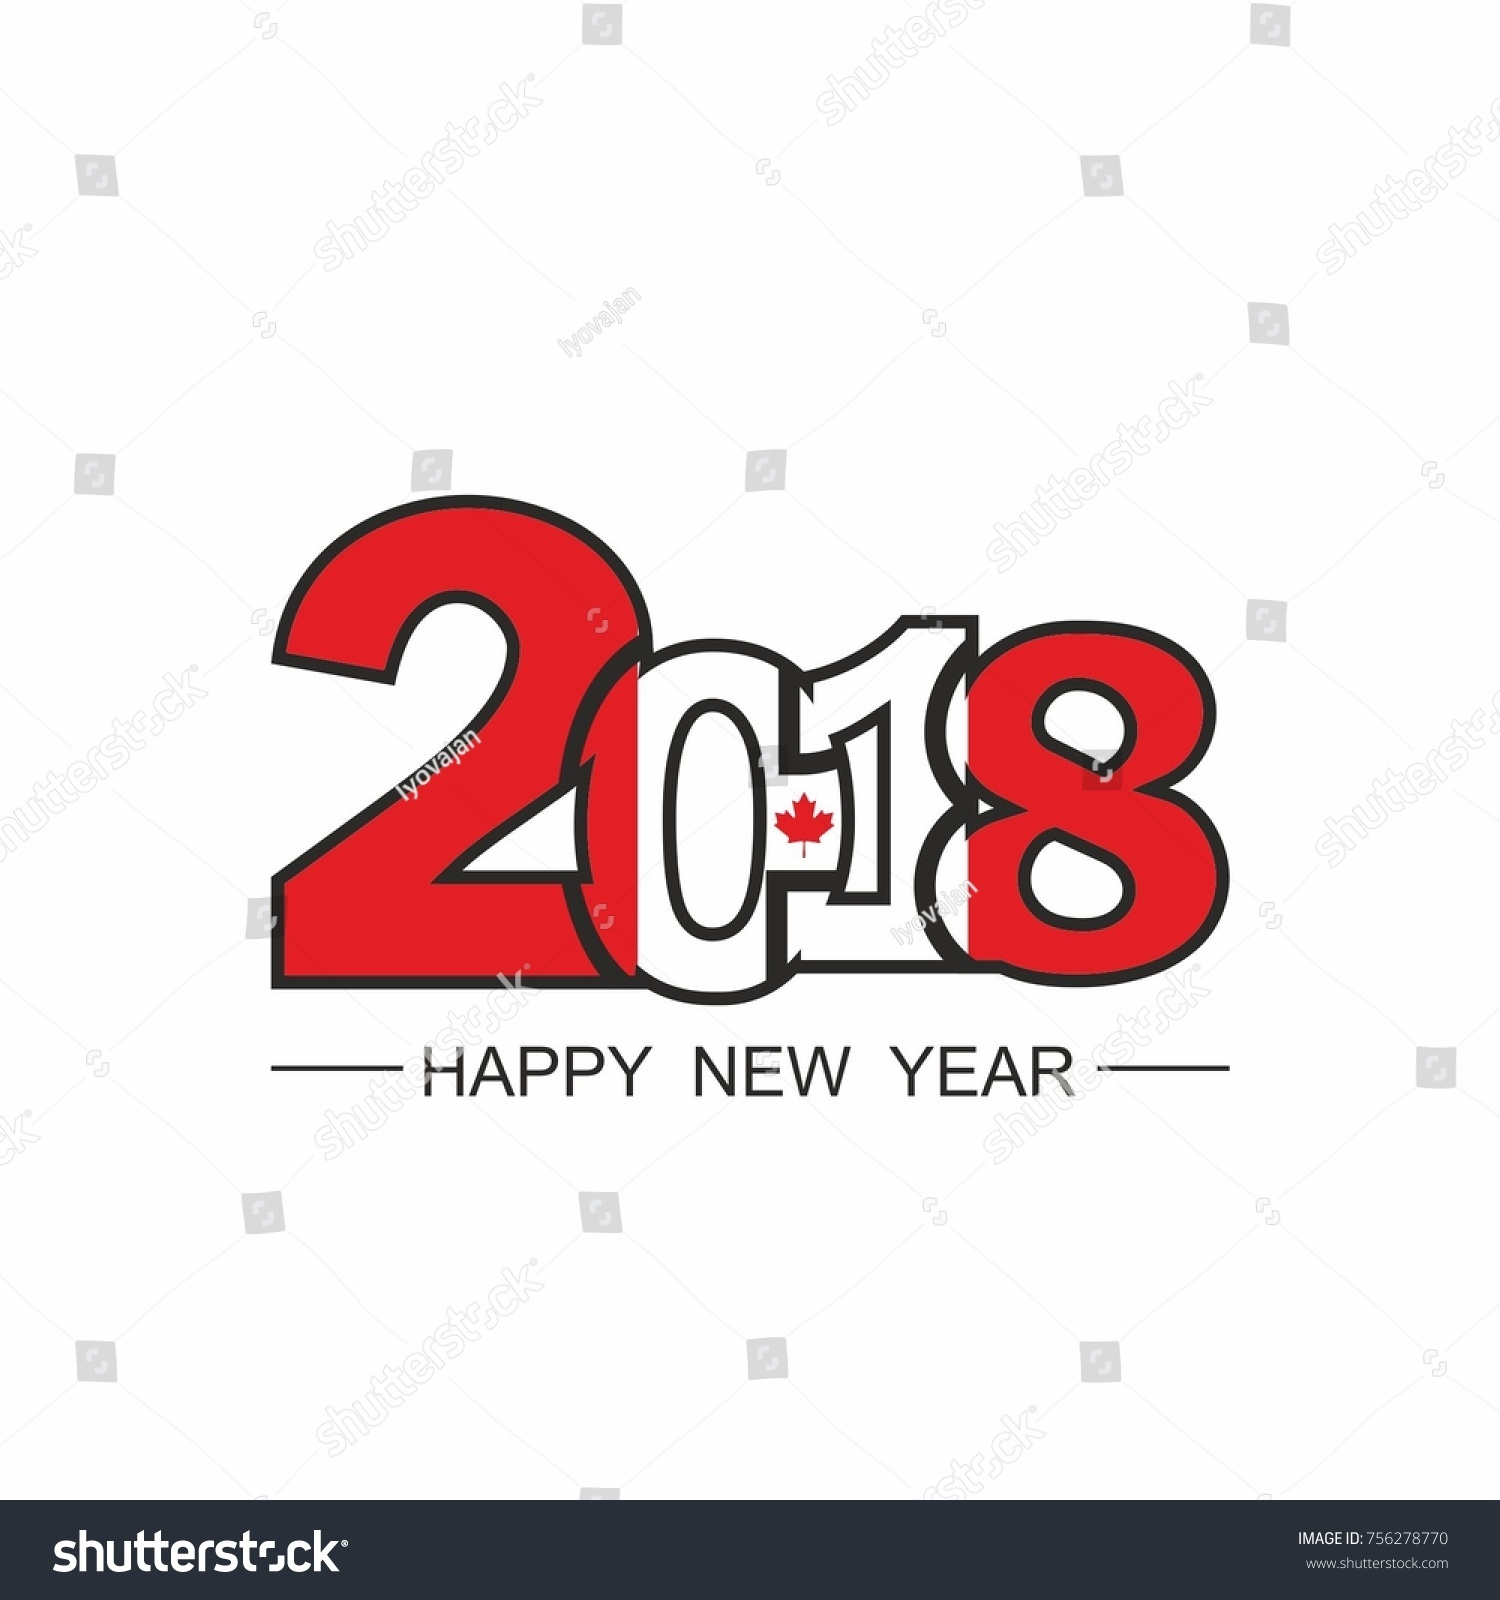 happy new year 2018 text design vector on white background flag of canada